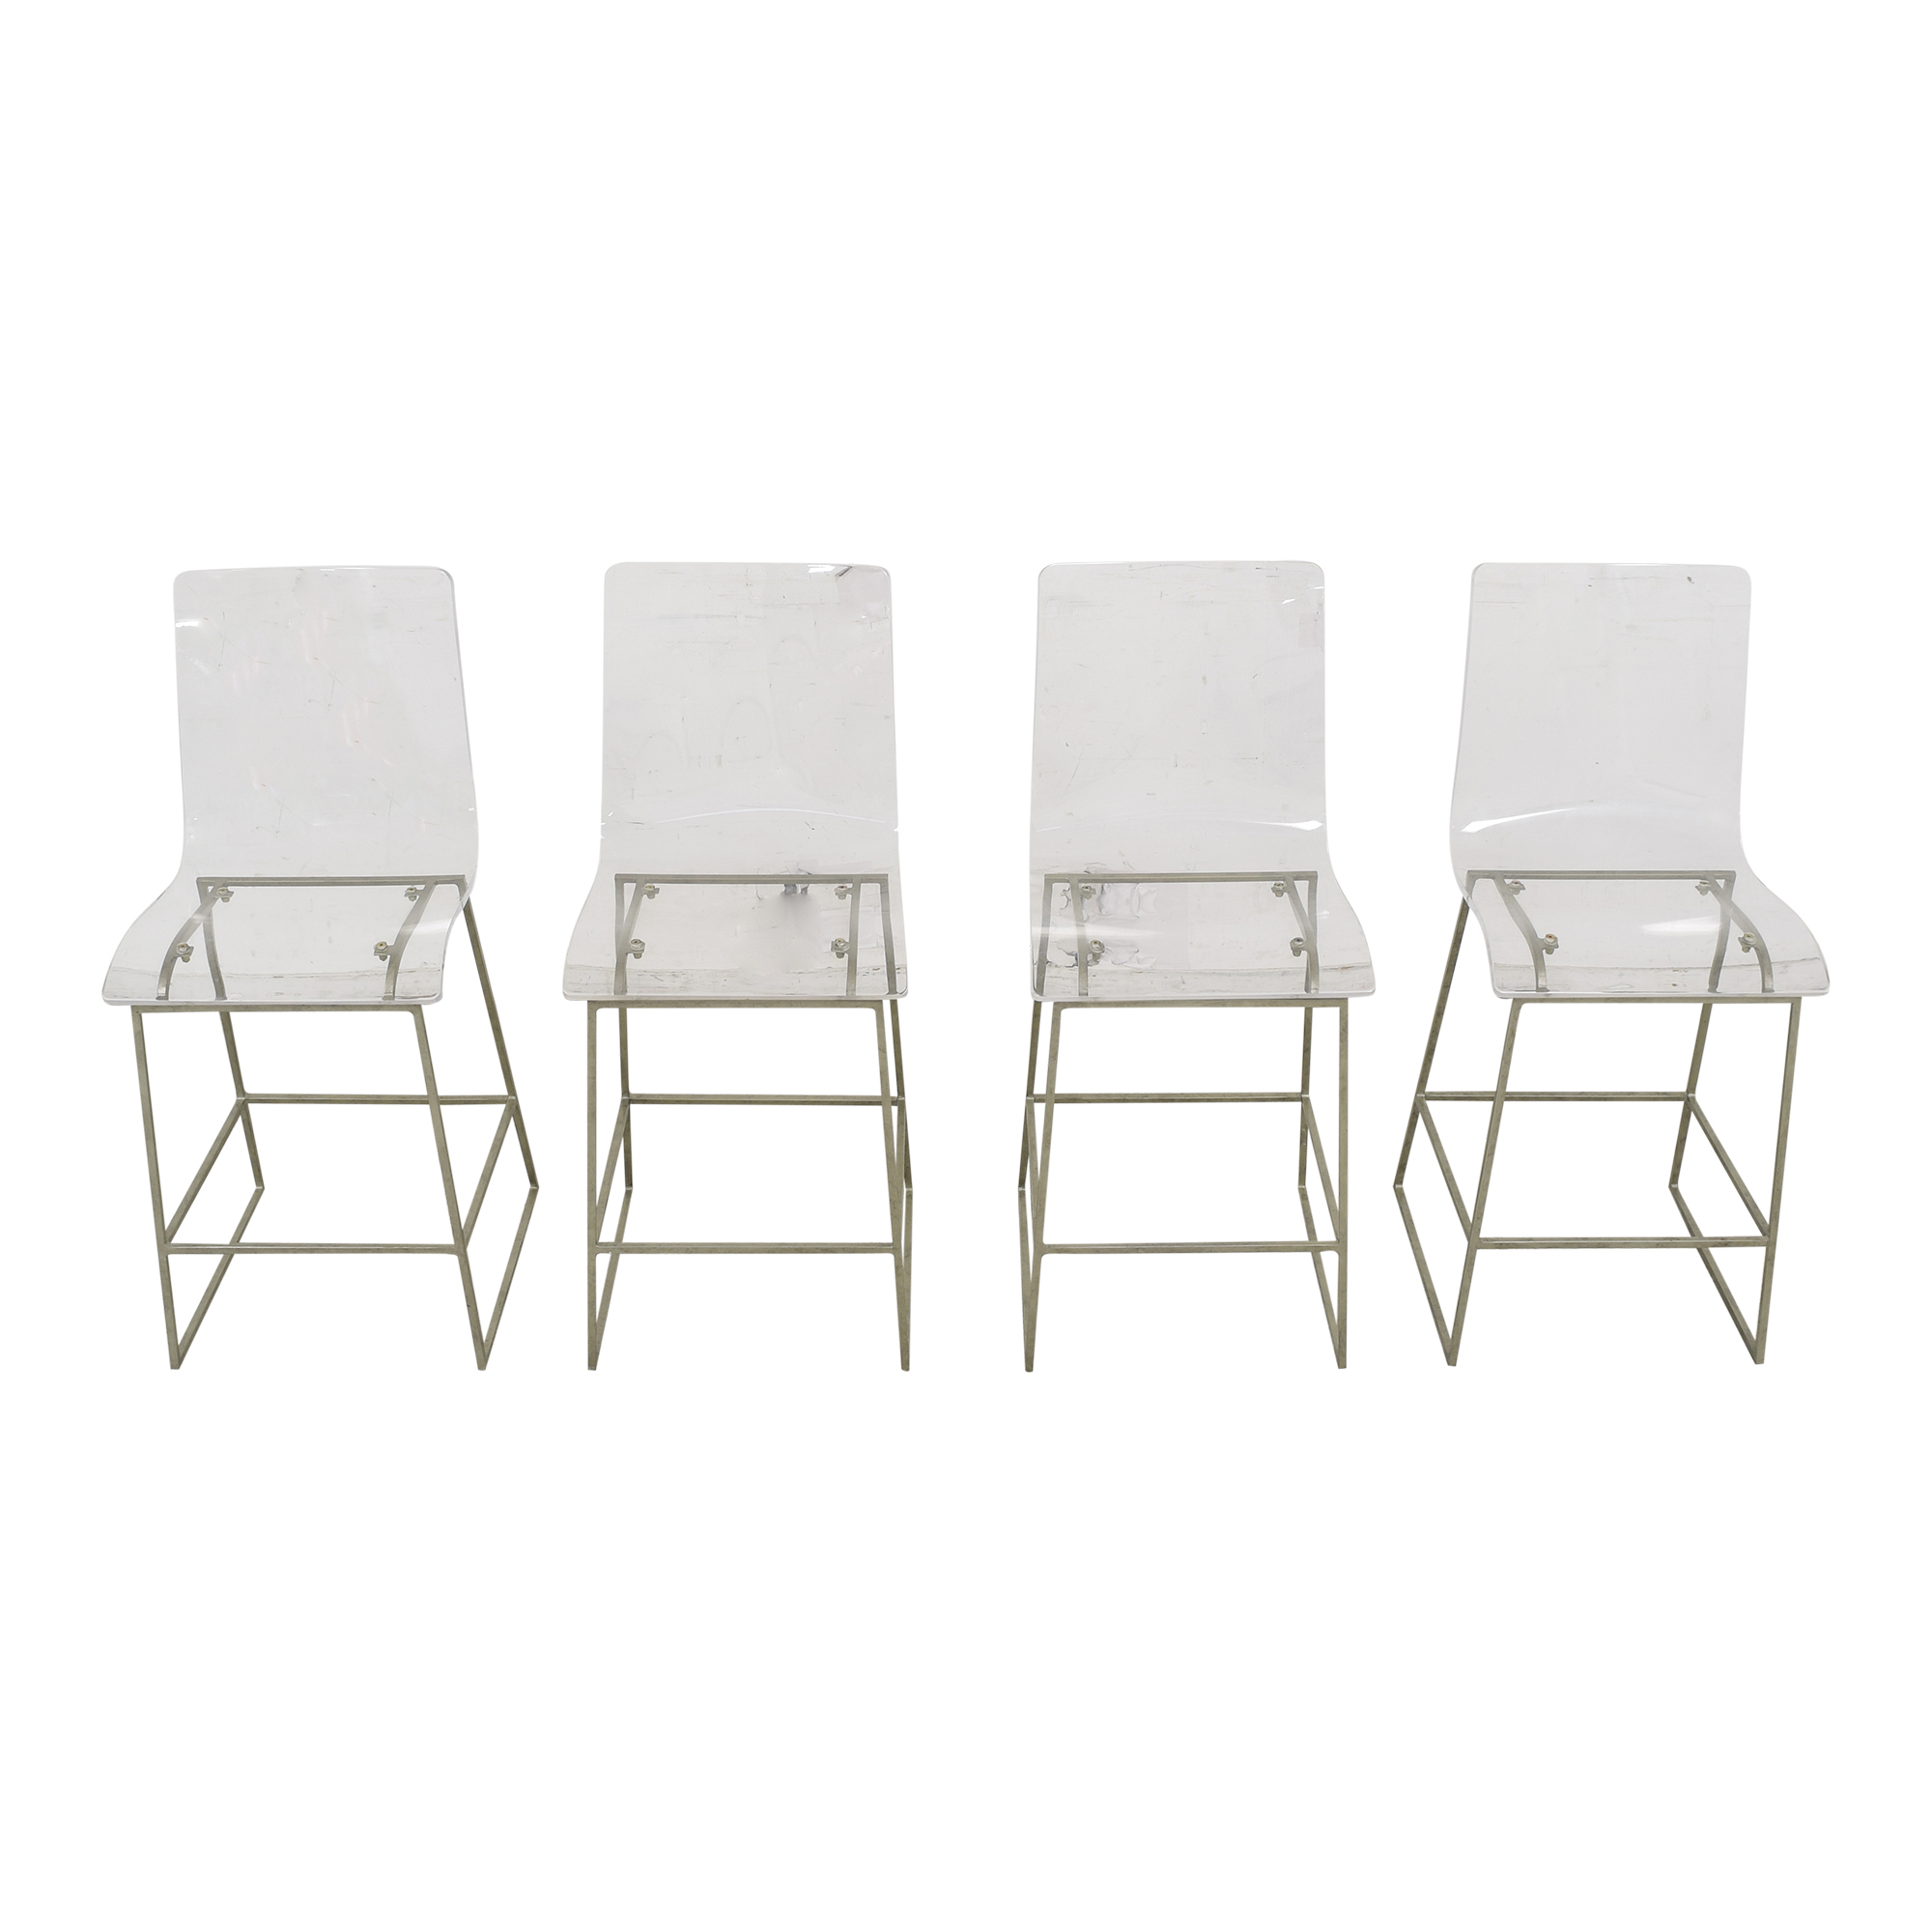 buy Lillian August Counter Stools Lillian August Chairs